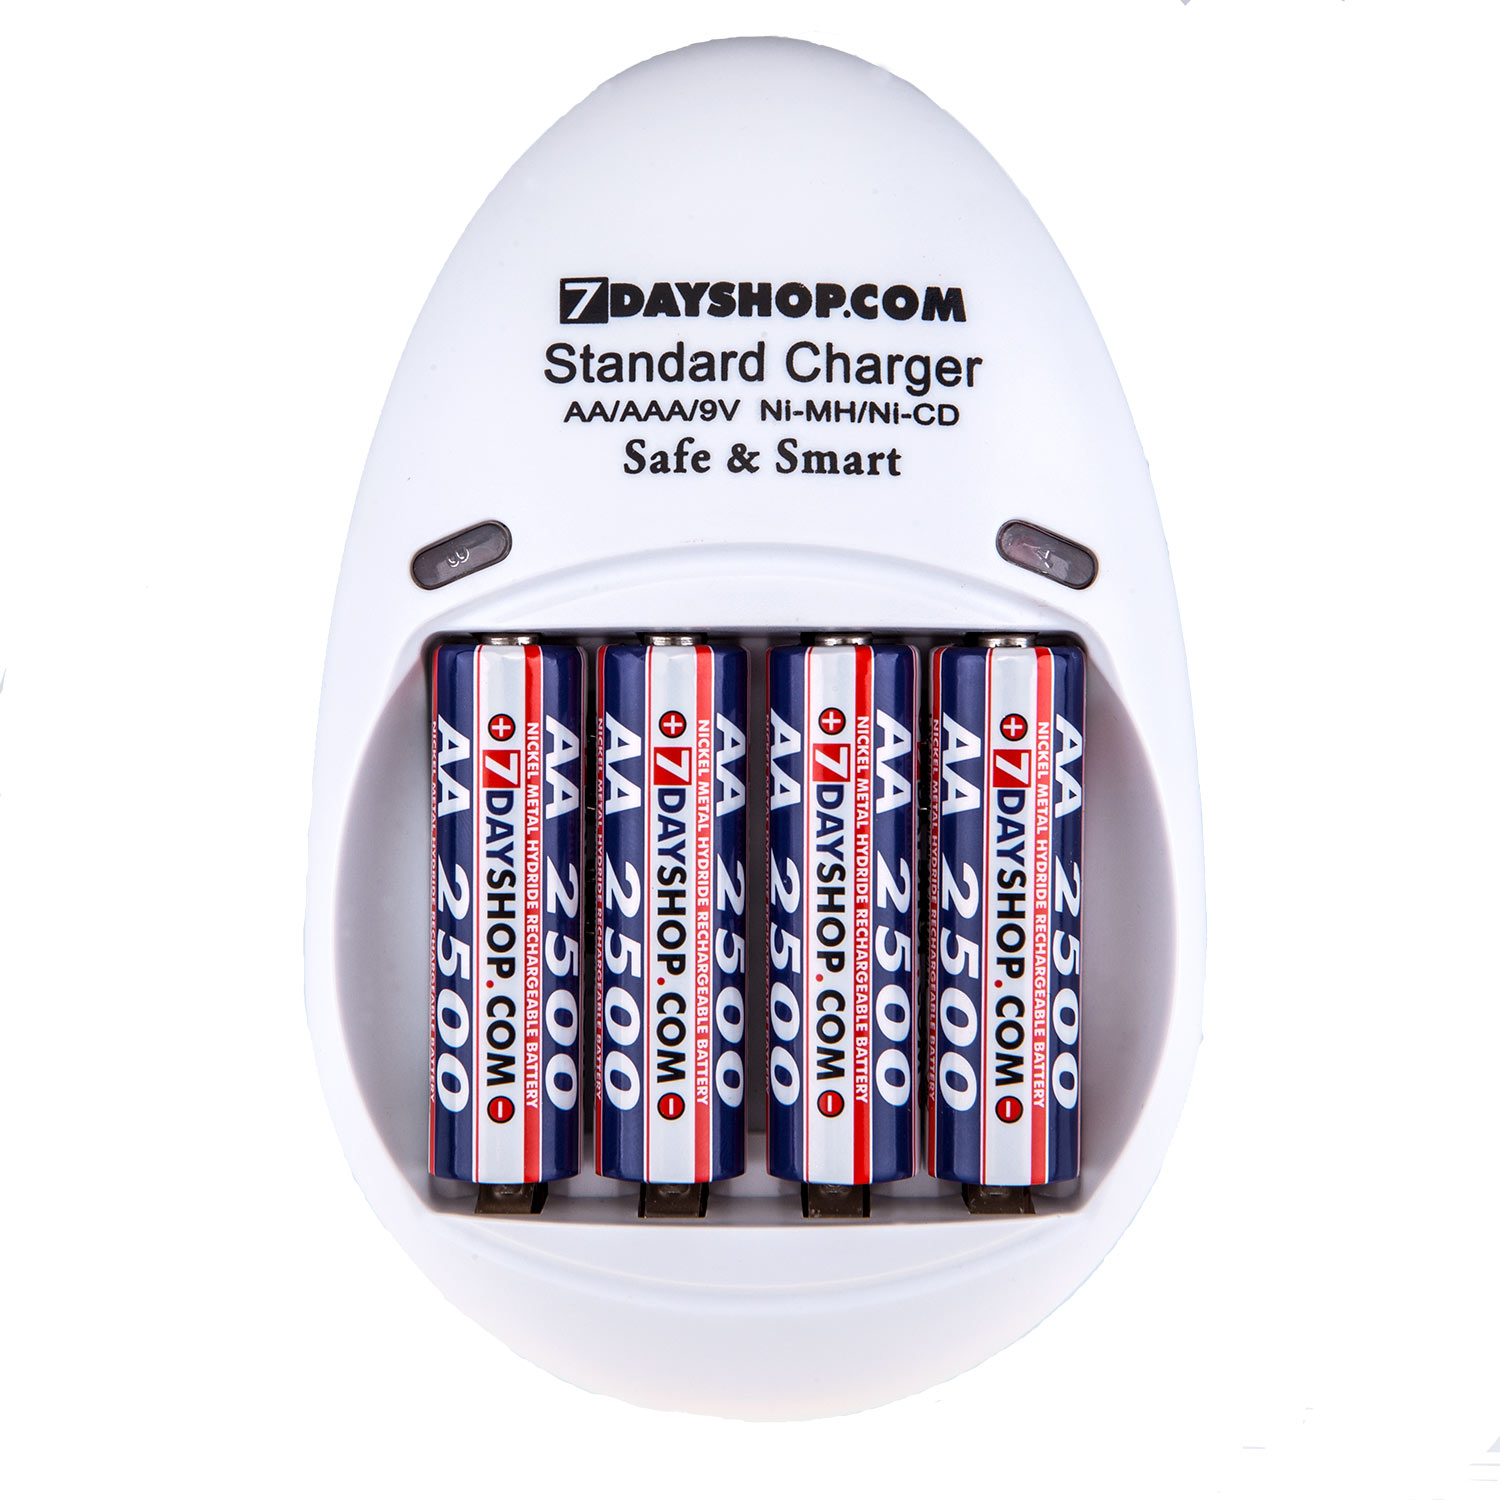 7dayshop Battery Charger  Safe & Smart  Model 200S  For AA  AAA and 9V Sizes